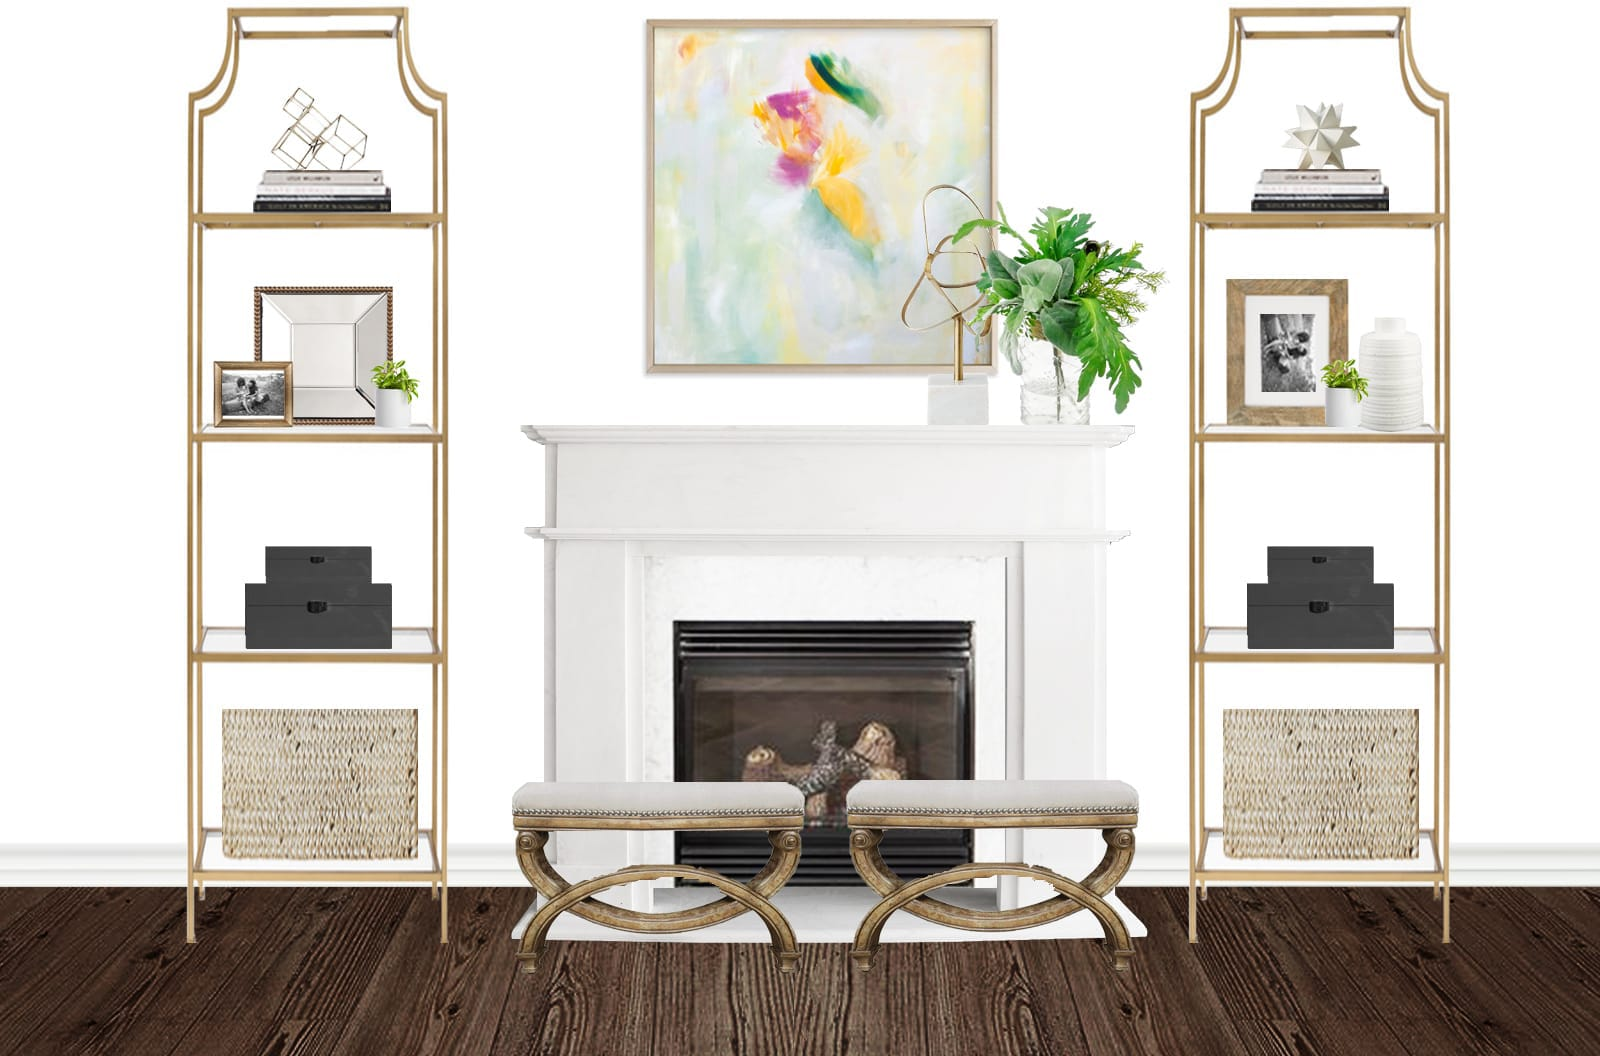 Fireplace with a Pop of Color